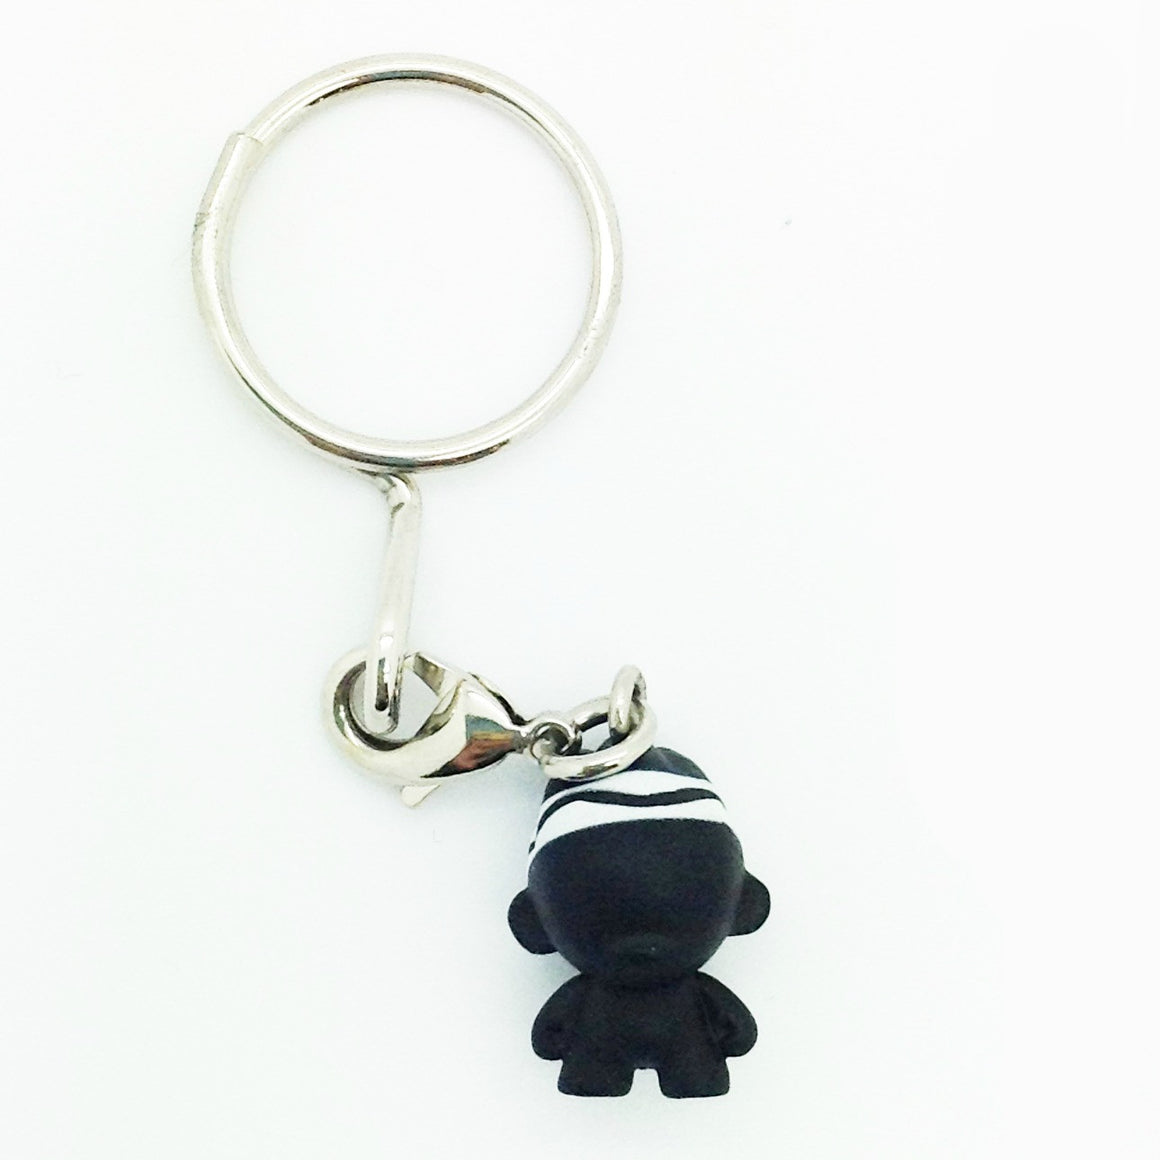 Crayola Munnyworld Zipper Pull Keychains Blind Box - Black Foomi (Chase)